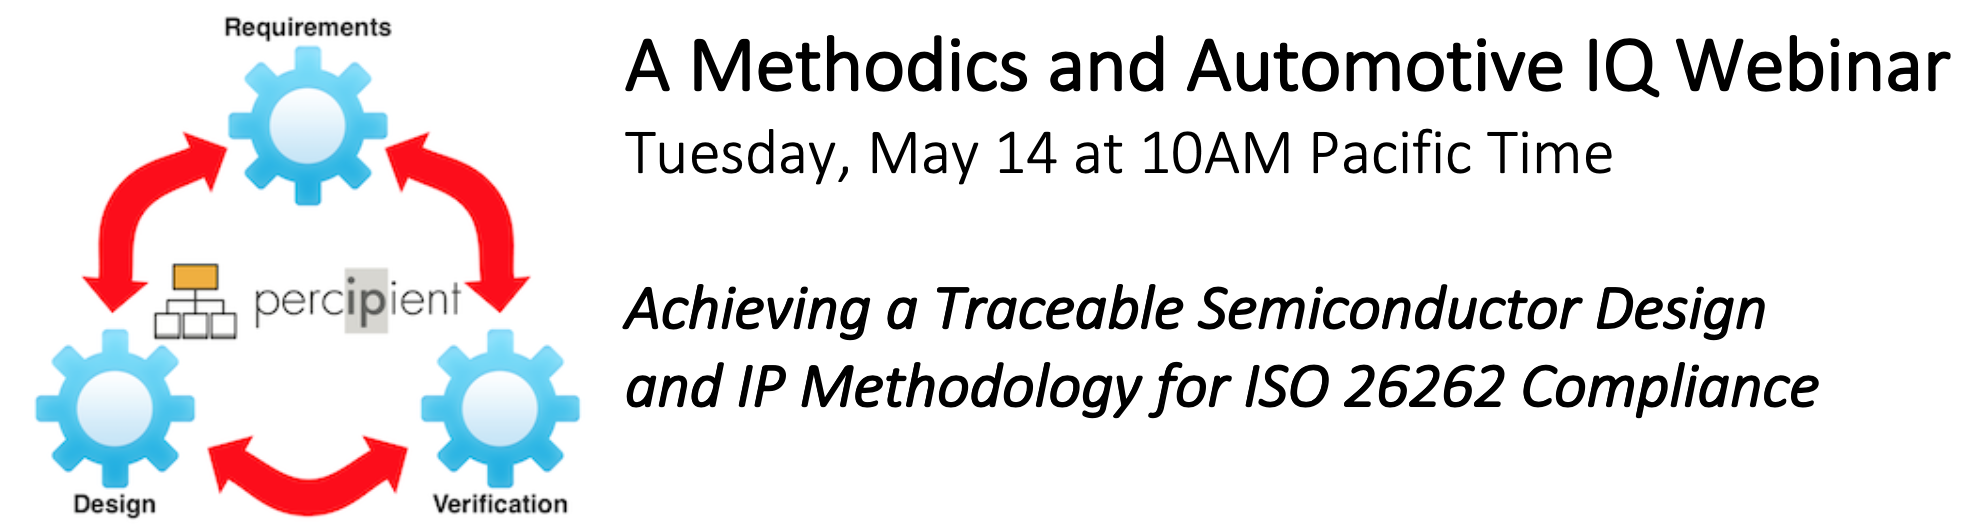 The webinar is now over, but you can click the image above for more details and to register to view the recording of this informative webinar!